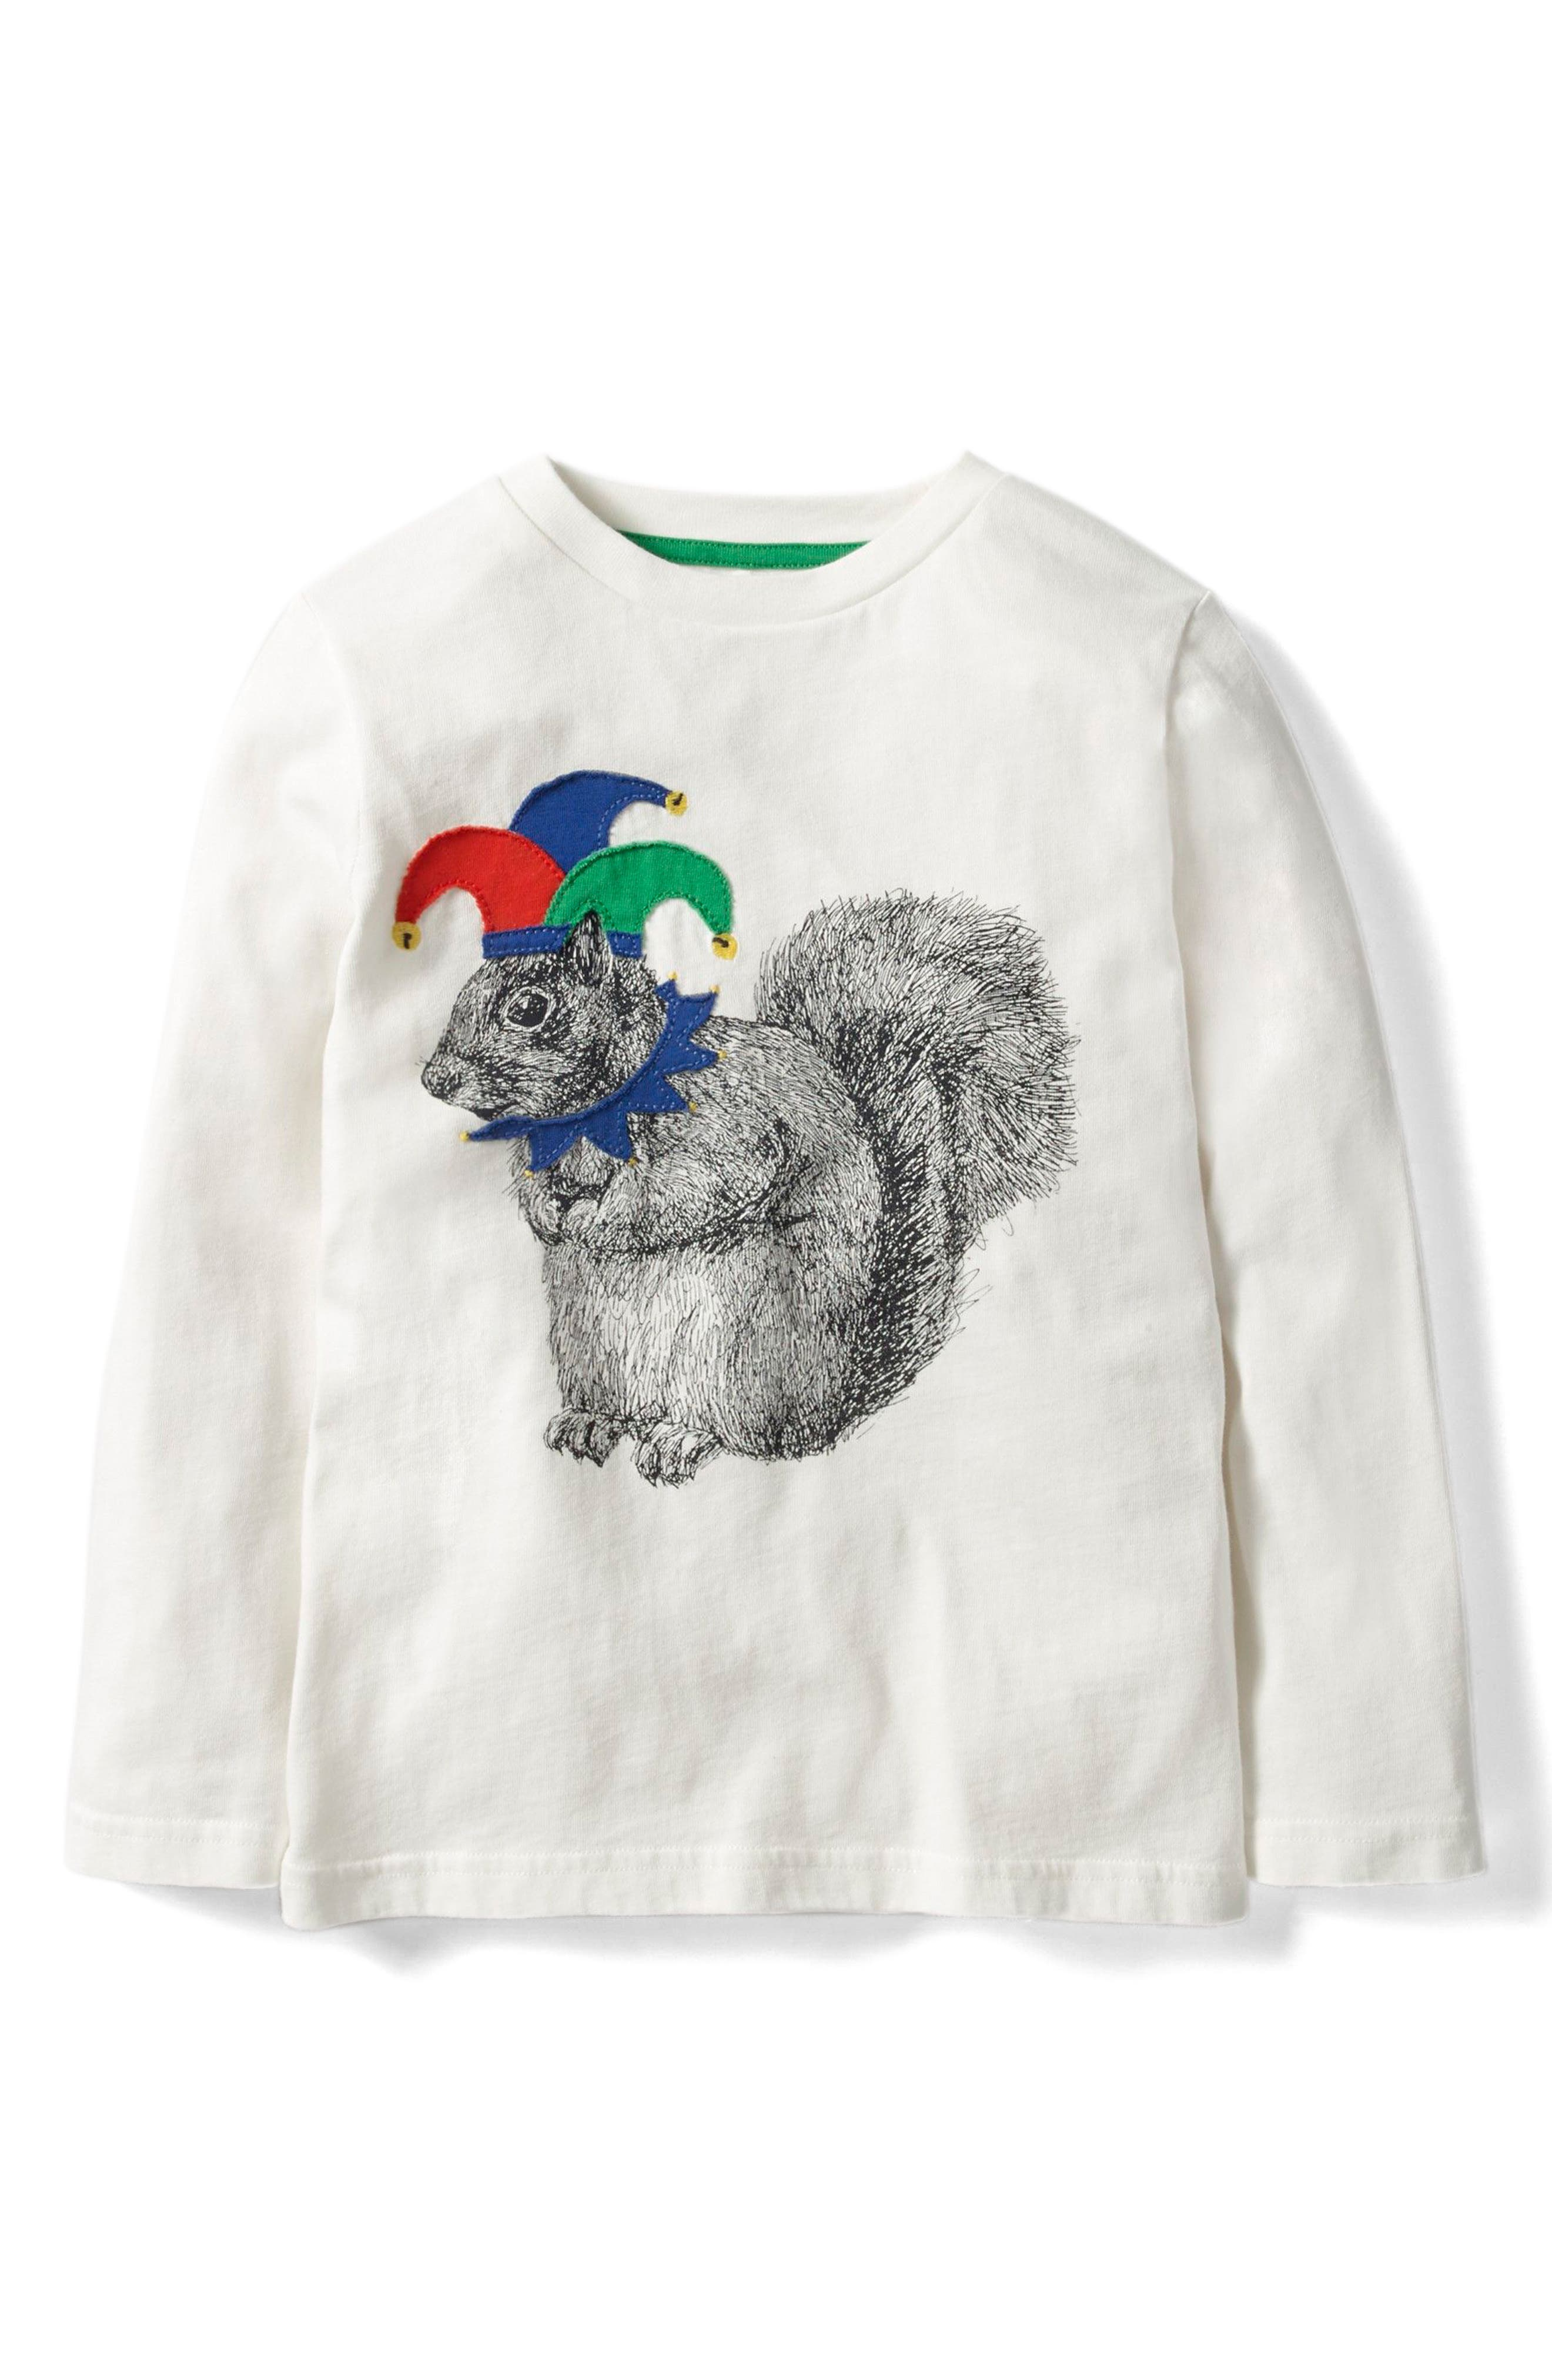 Animals Rule Long Sleeve T-Shirt,                         Main,                         color, Ecru Squirrel Jester